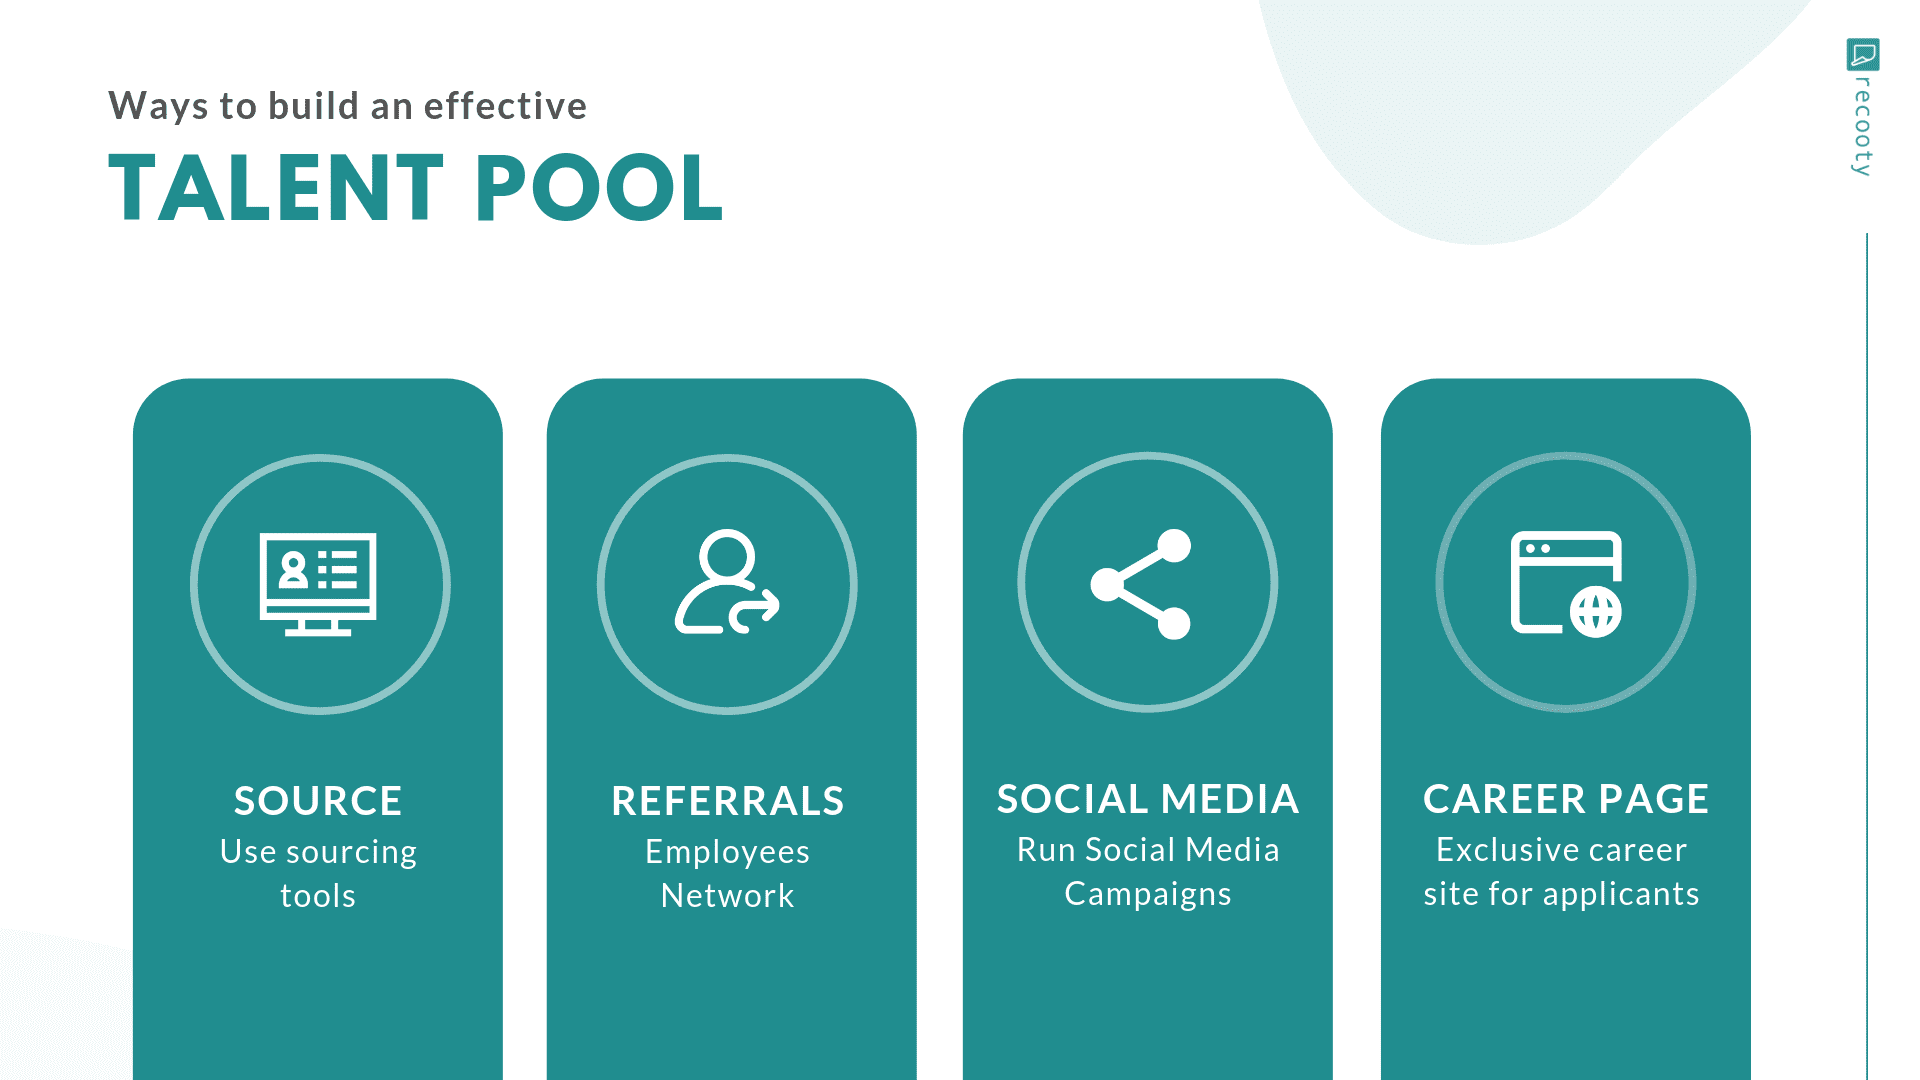 How to build a talent pool